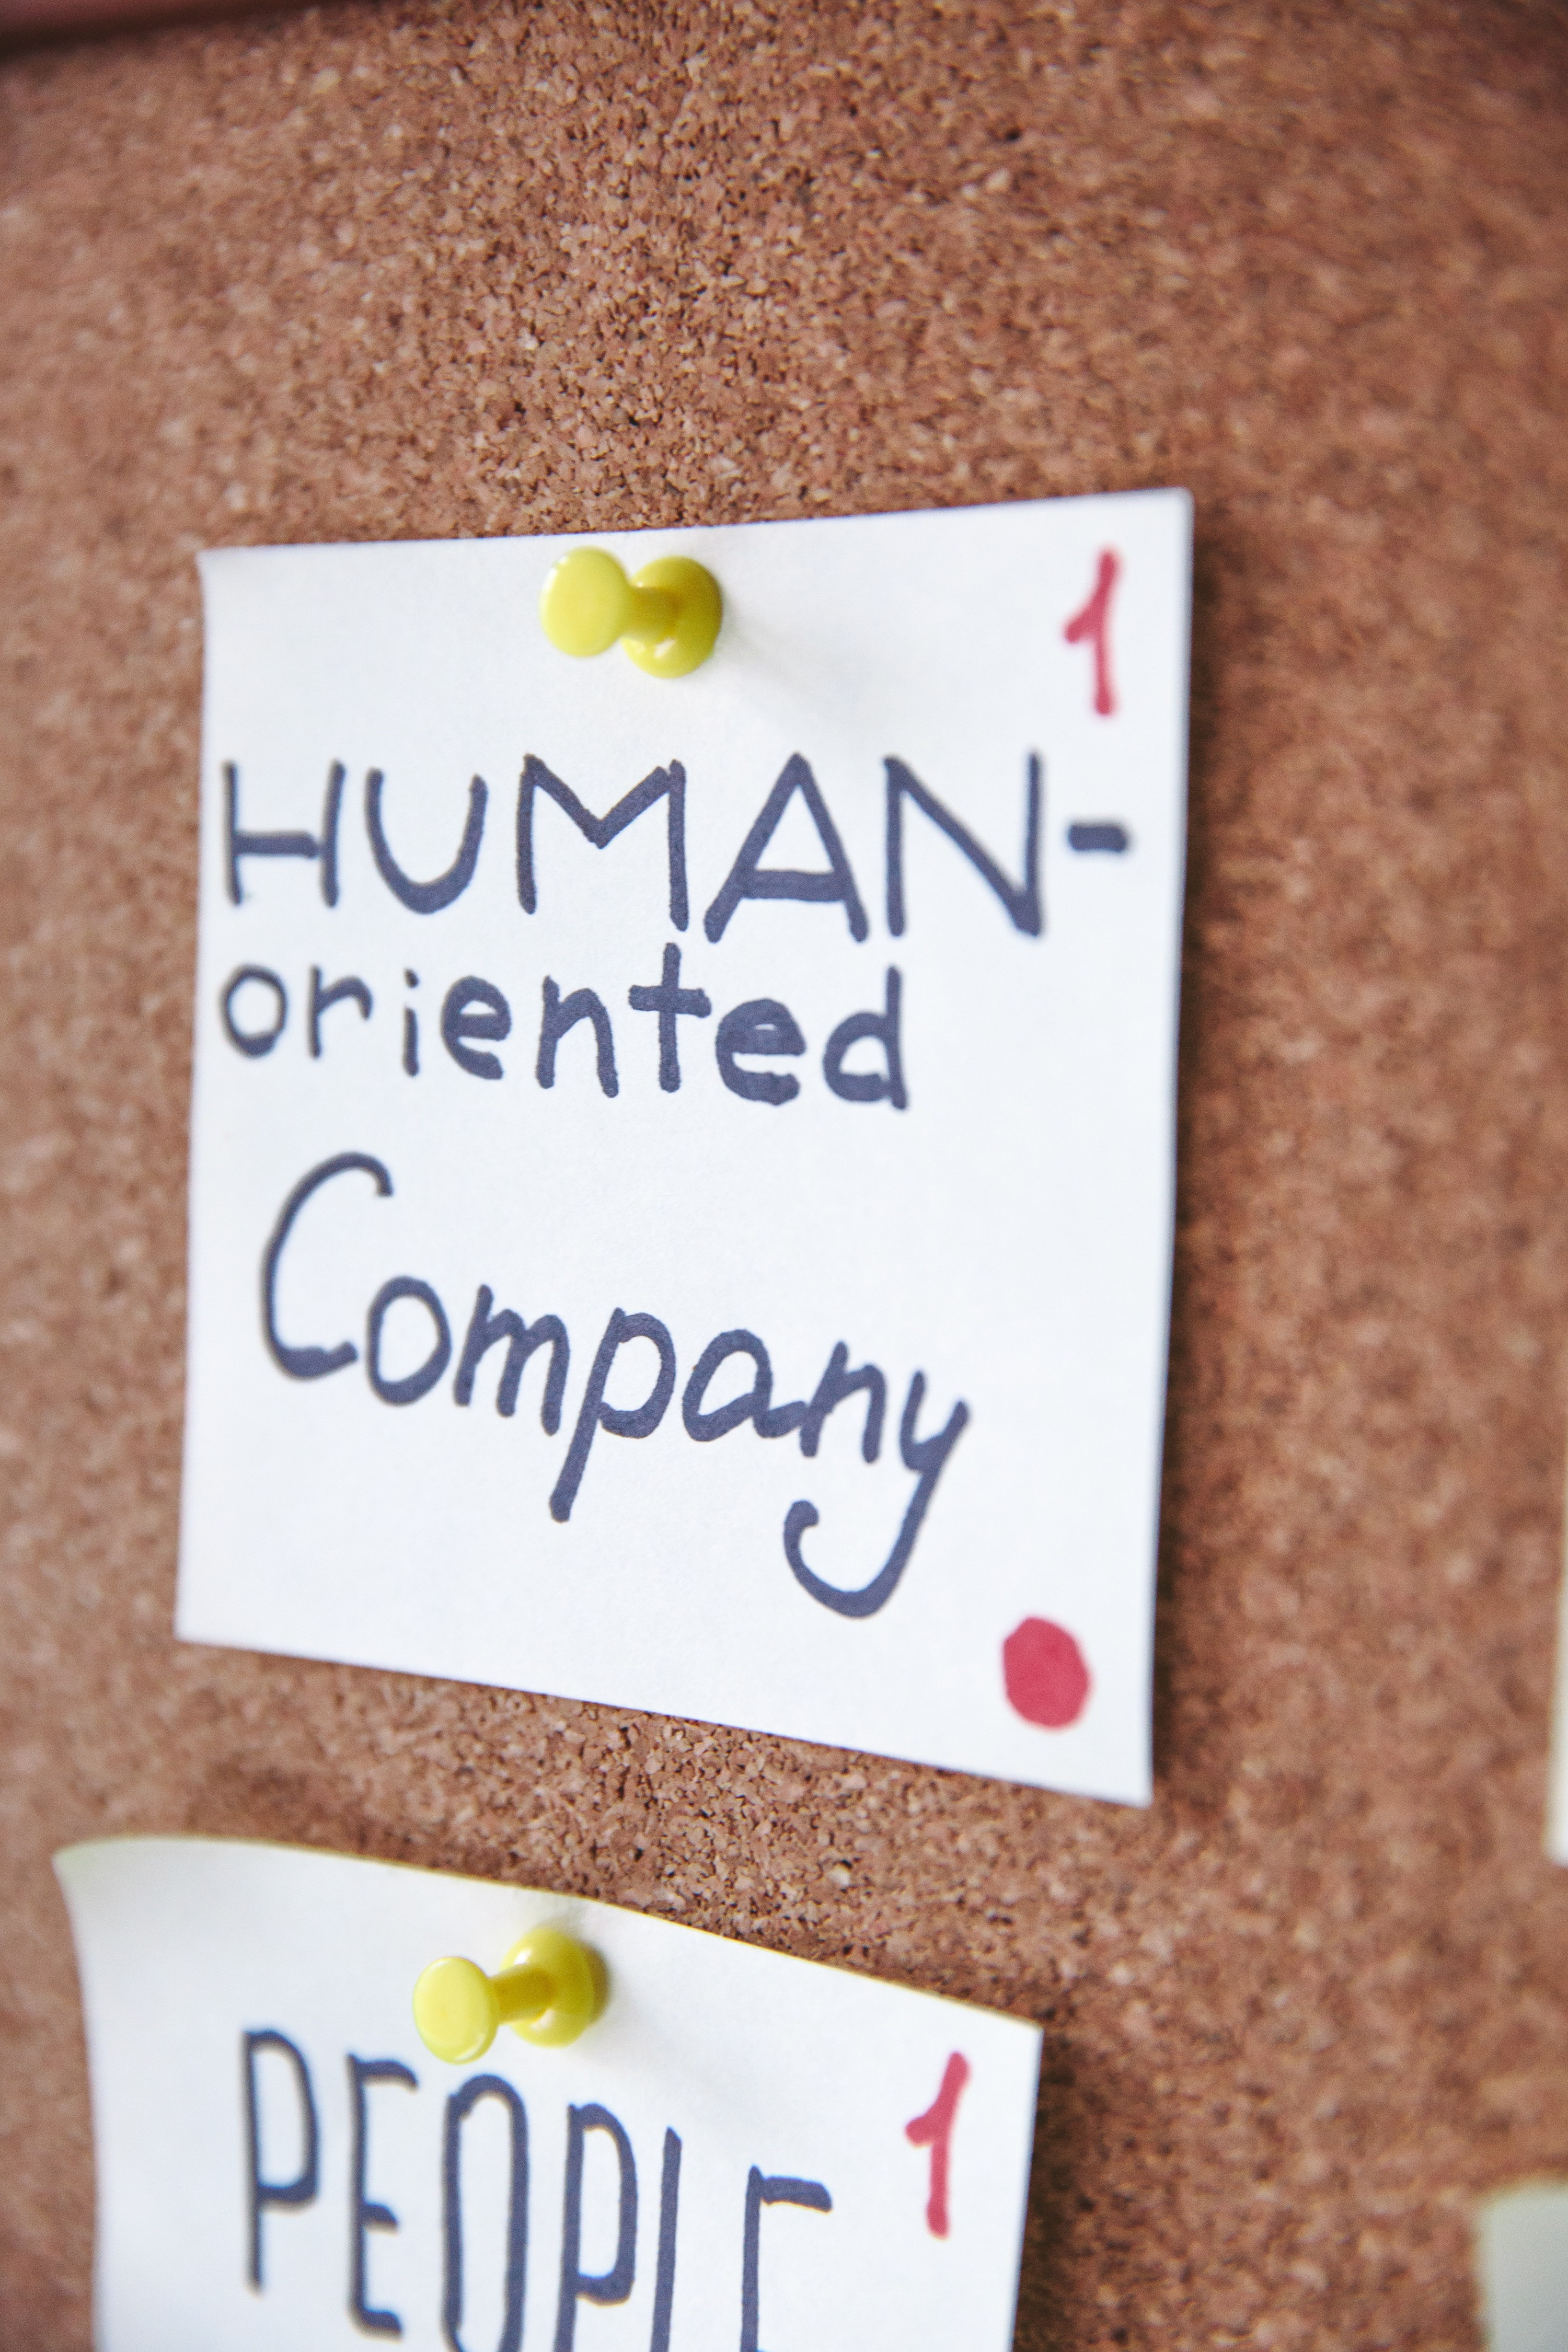 A sticky note on a pin board with 'Human-Orientated Company' written on it.